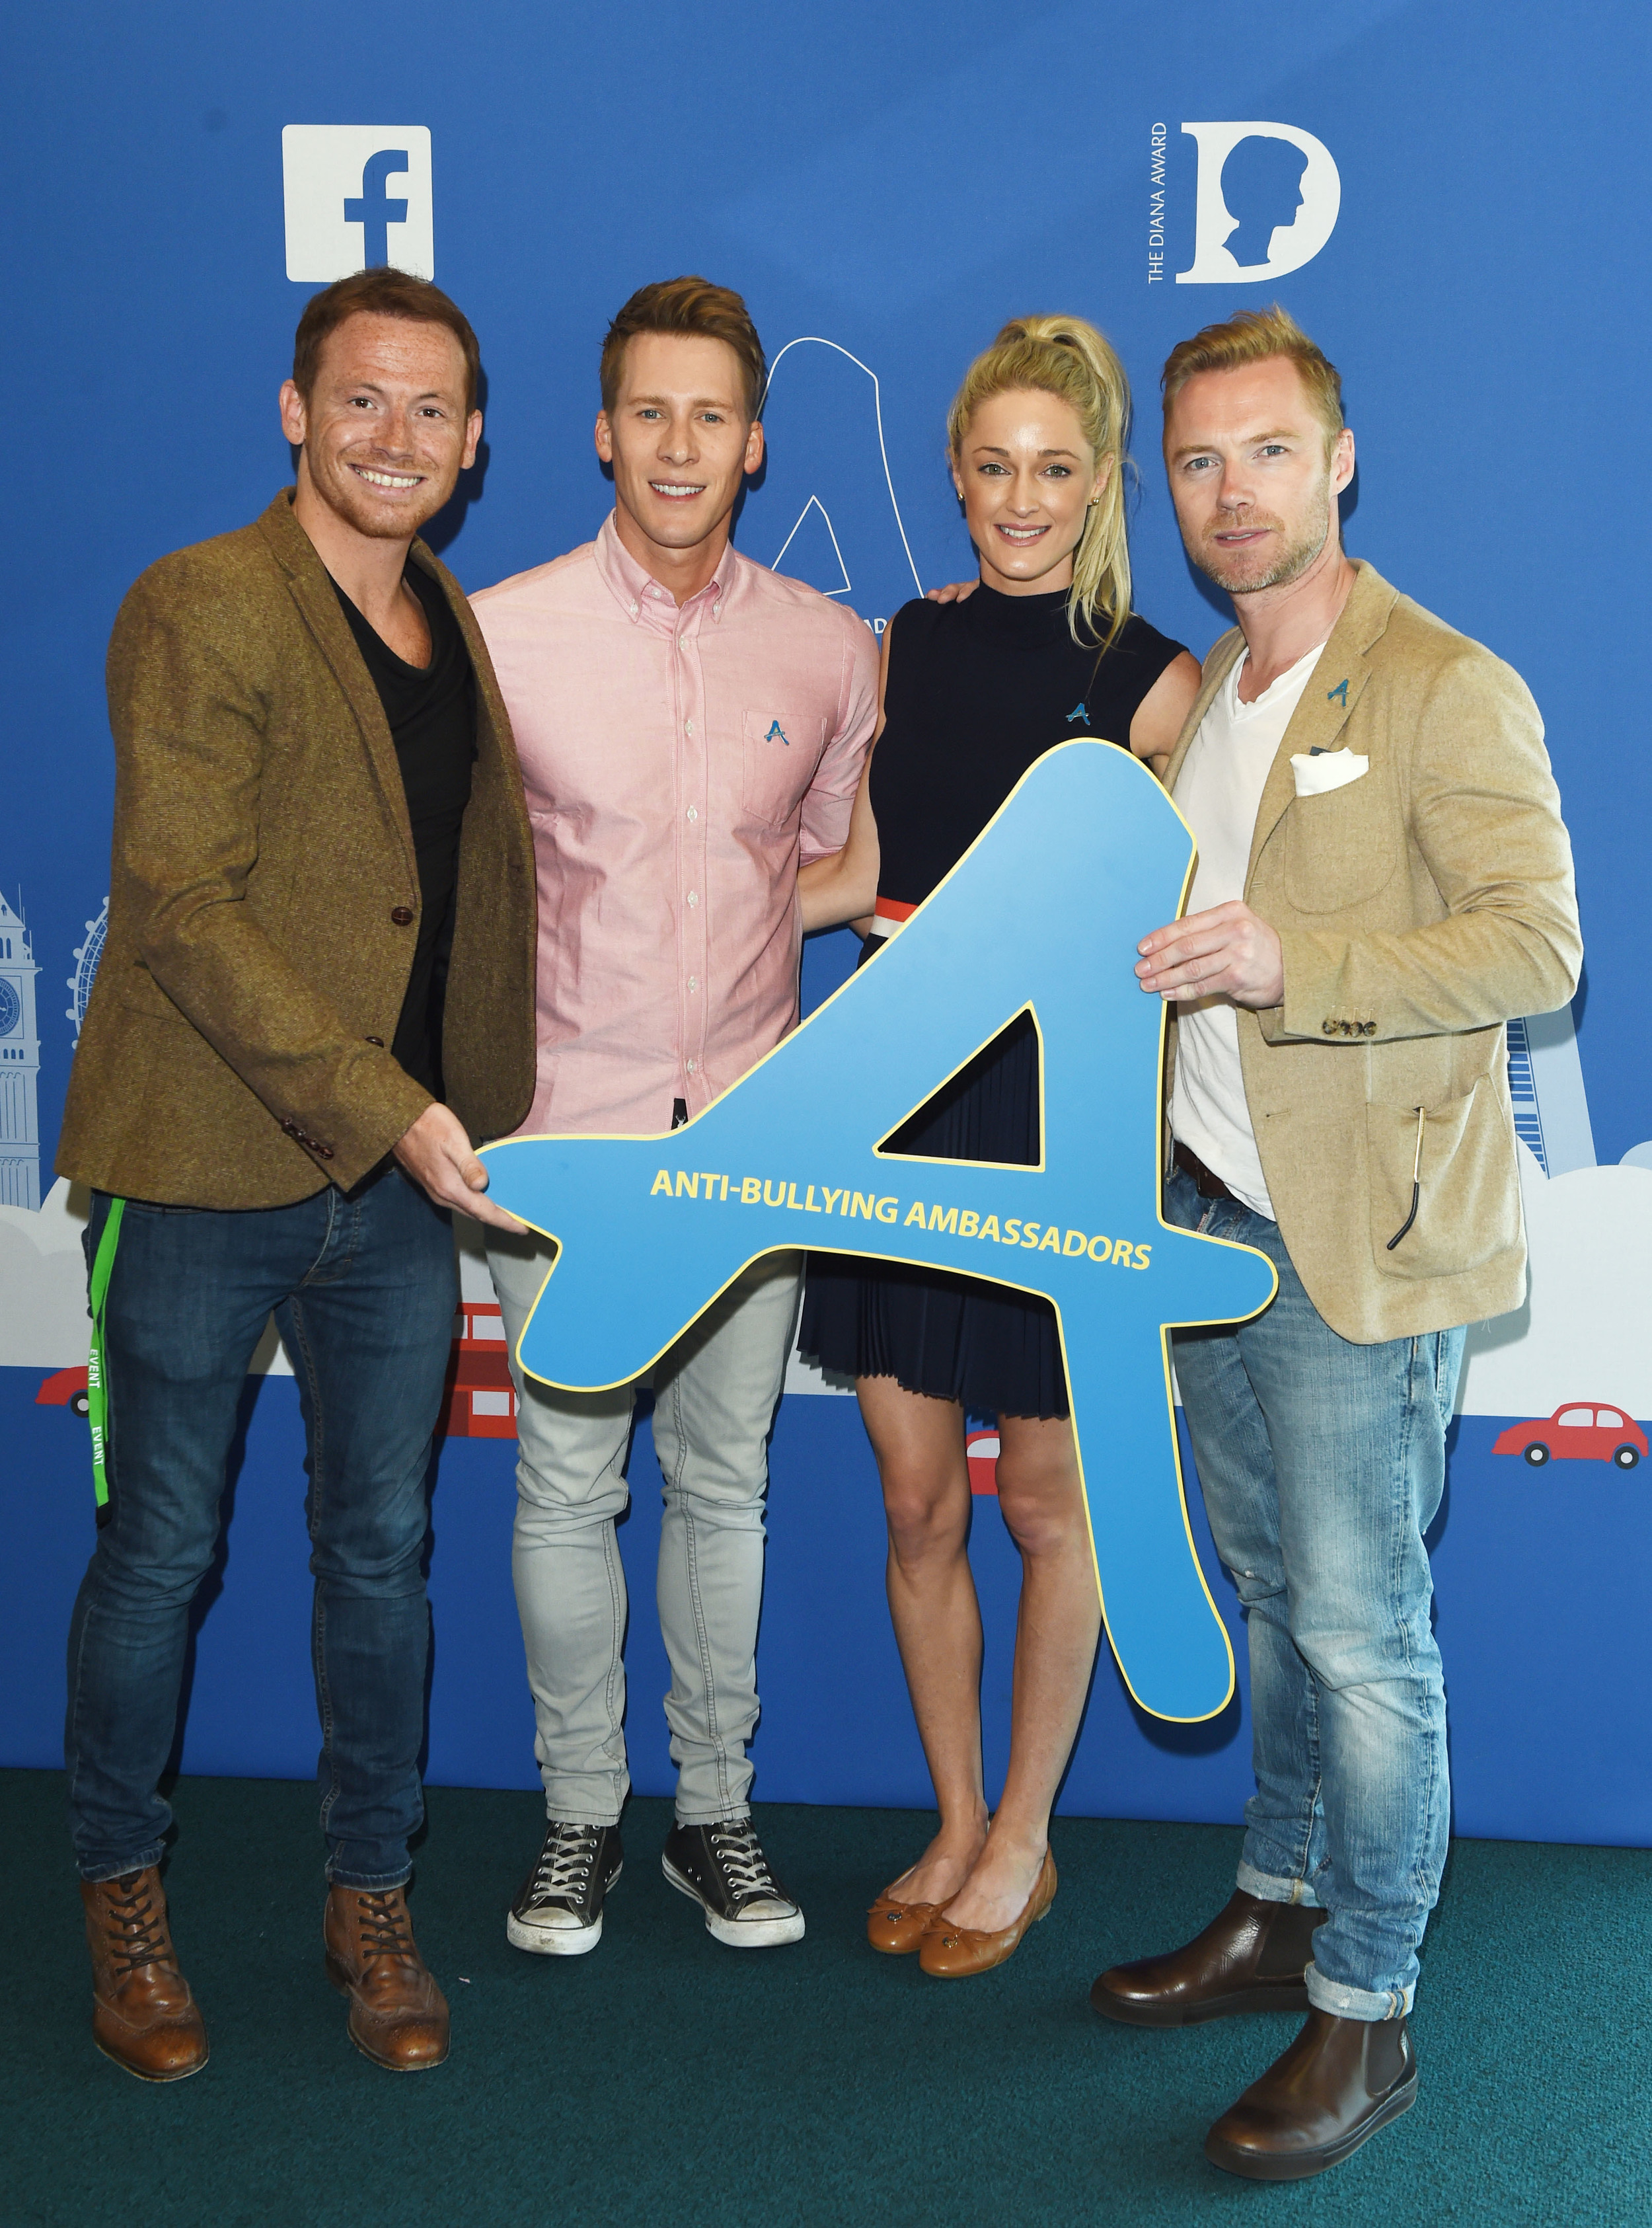 9th July 2015